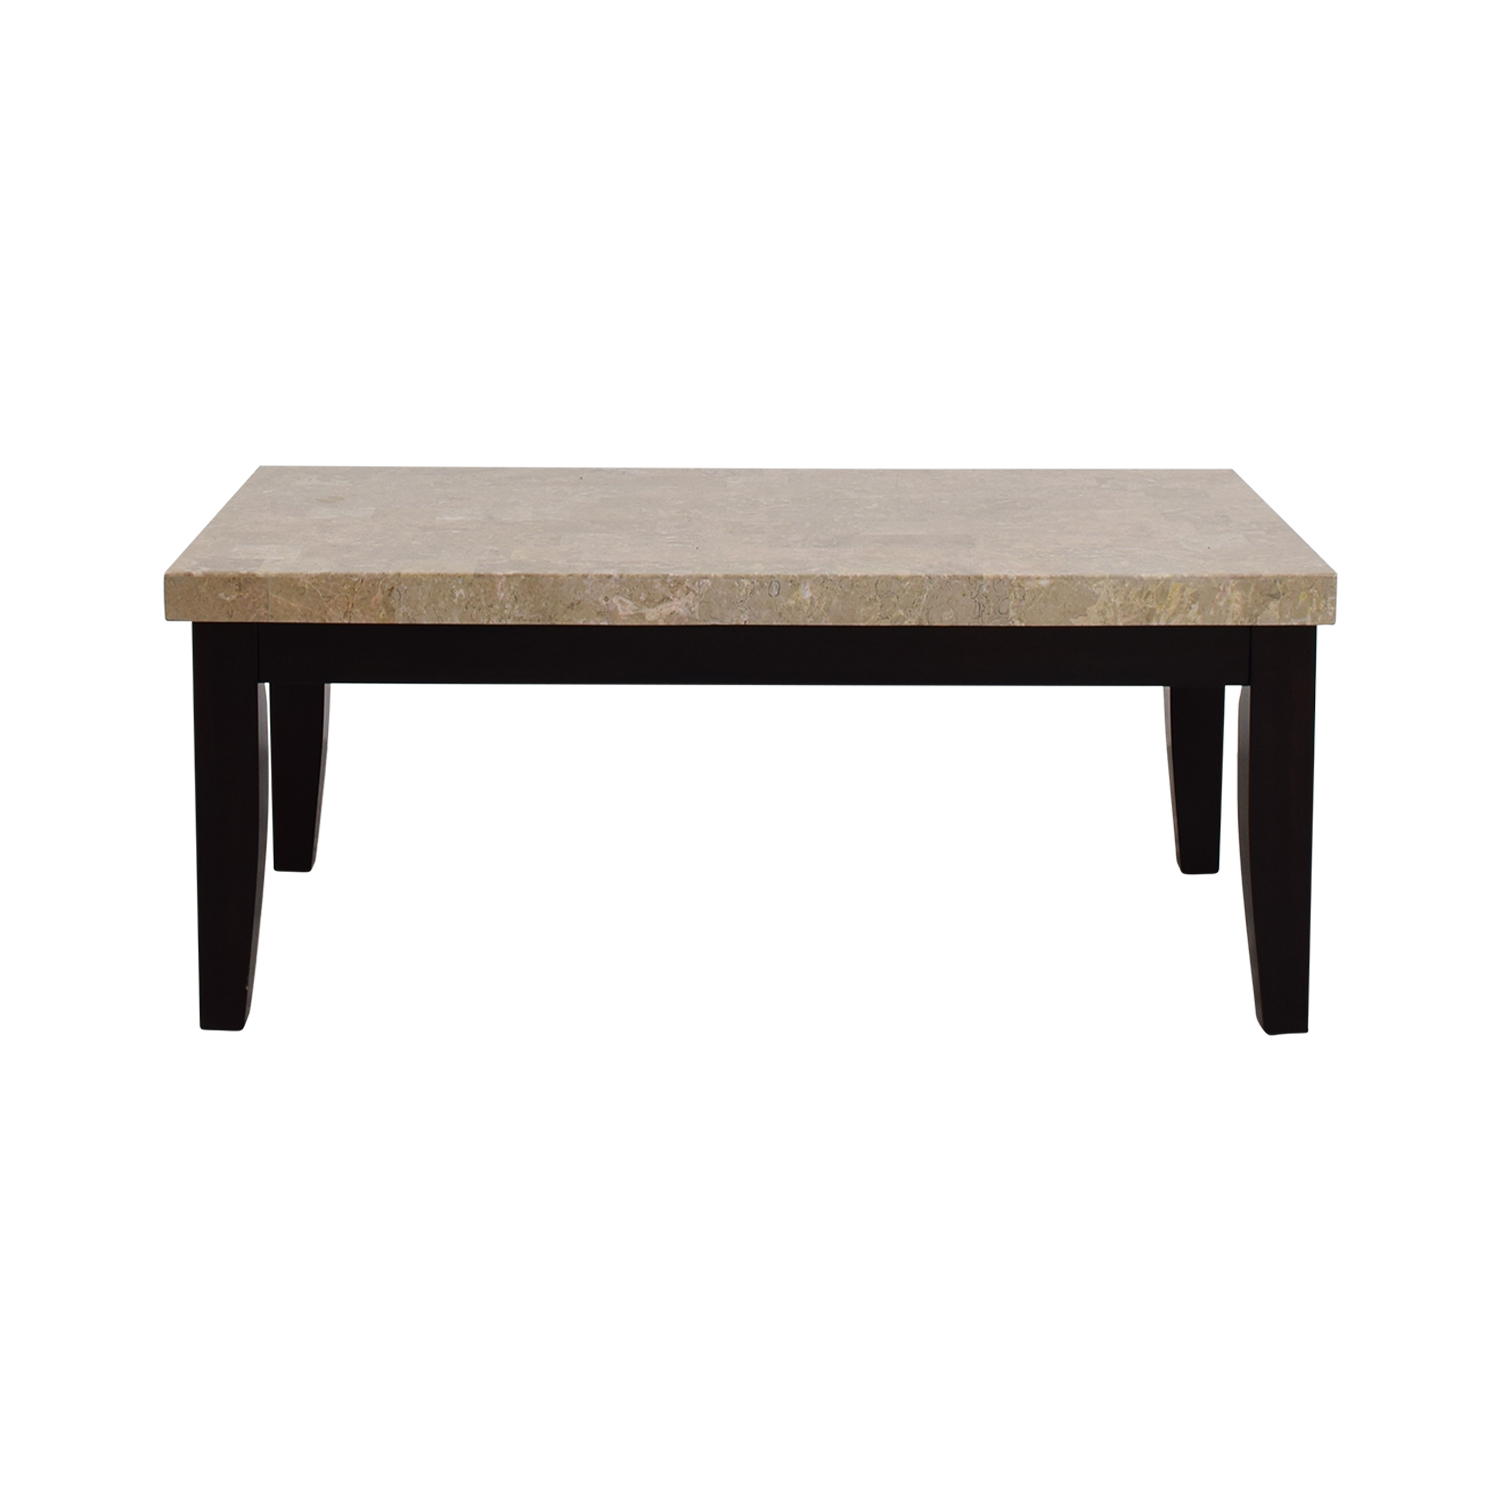 Shop Bobs Furniture Faux Marble Coffee Table Bobs Furniture Coffee Tables  ...